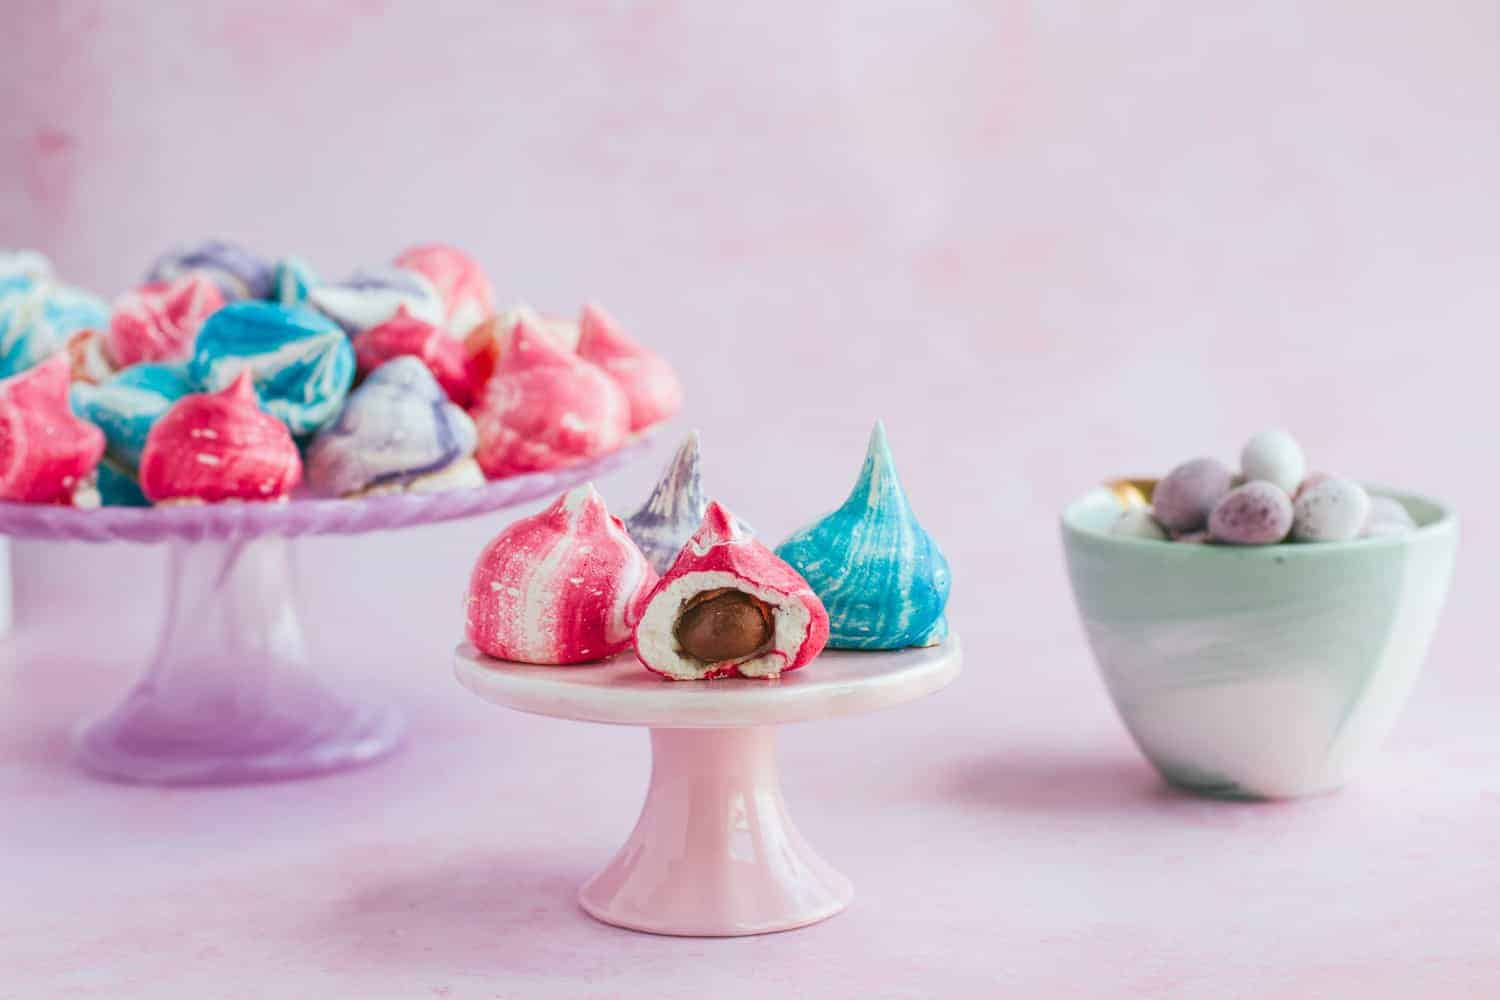 Cake stands with mini meringues in blue, pink and purple